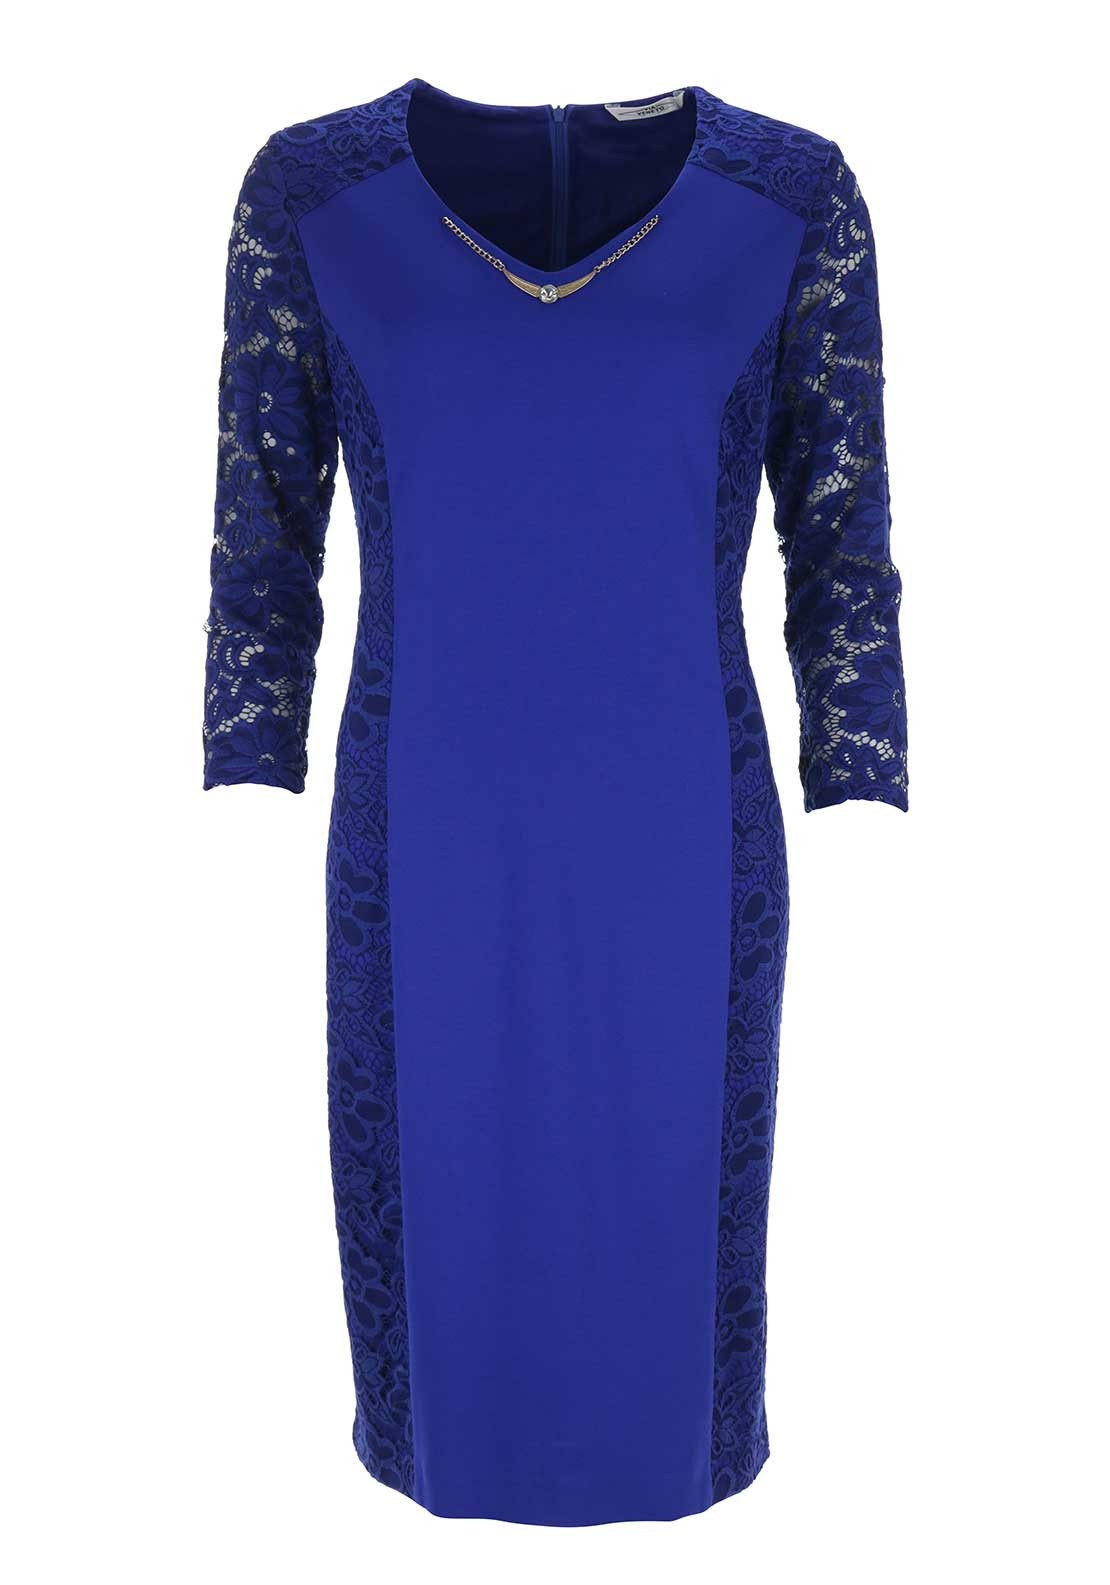 Via Veneto Lace Trim Dress, Royal Blue